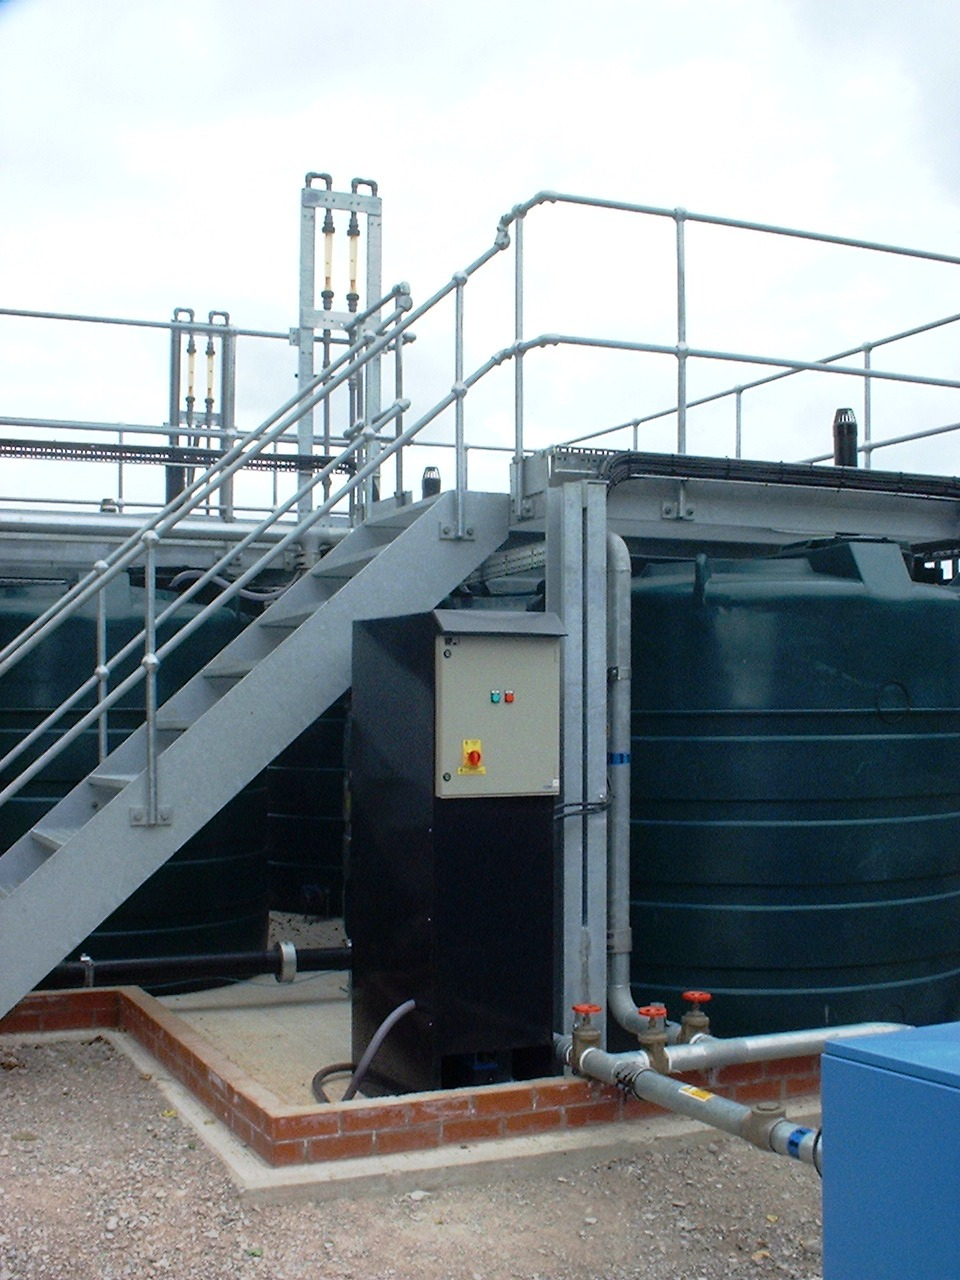 A continuously monitored methane stripping plant showing the dissolved methane monitor.